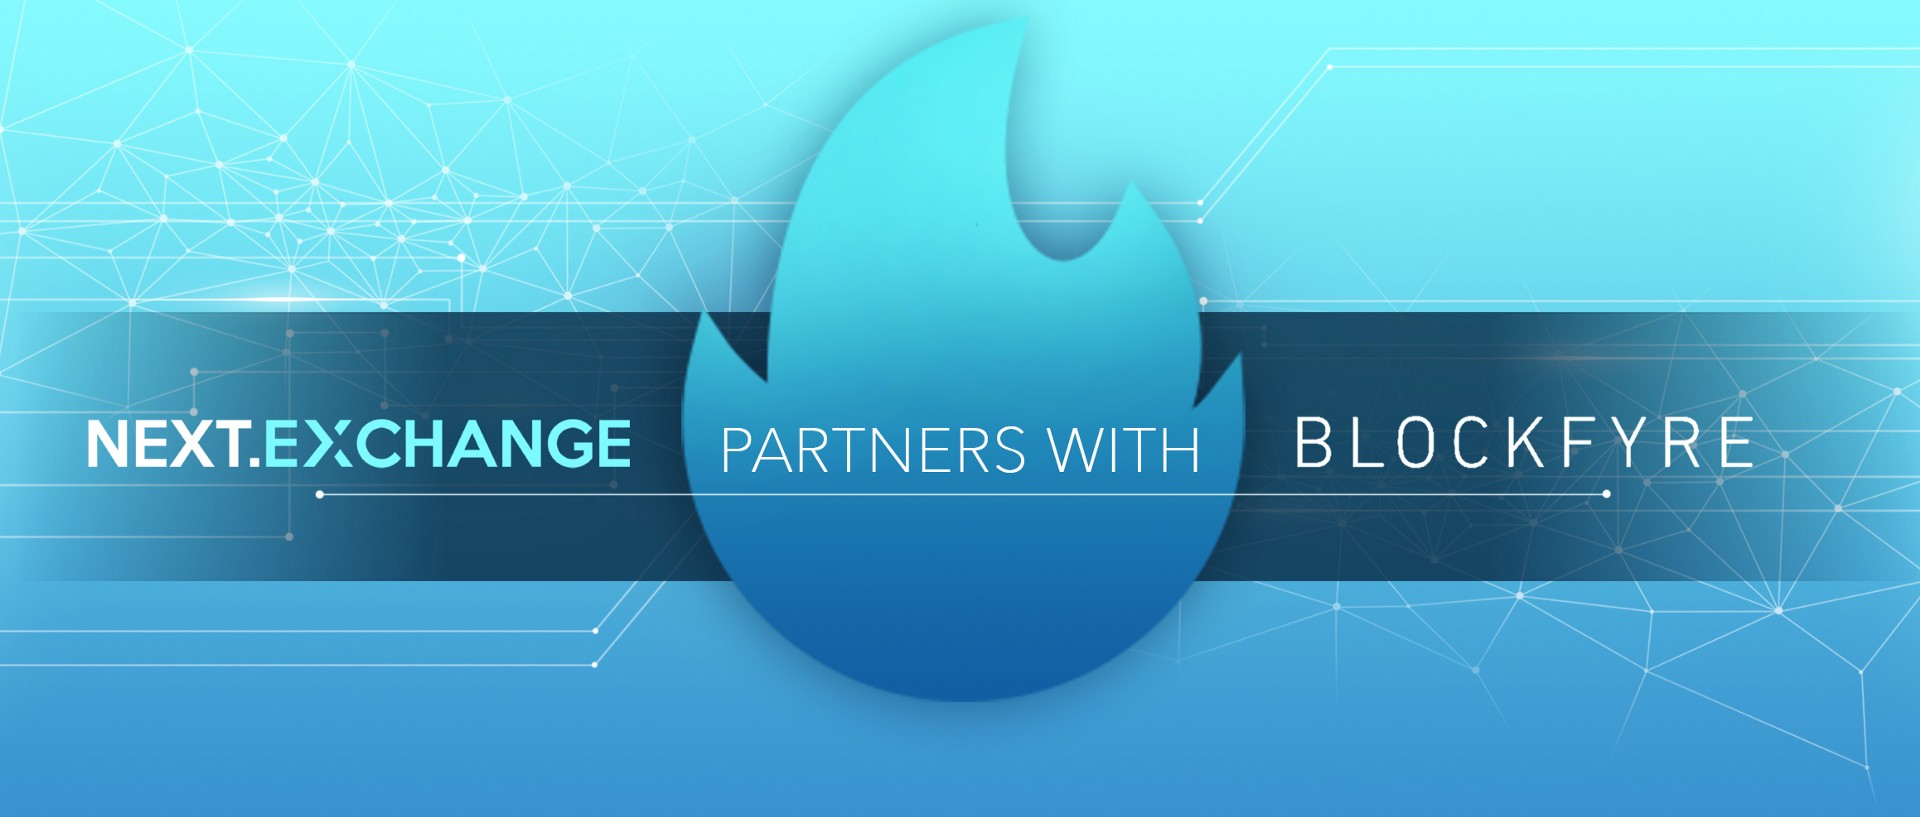 Next Partners with Blockfyre